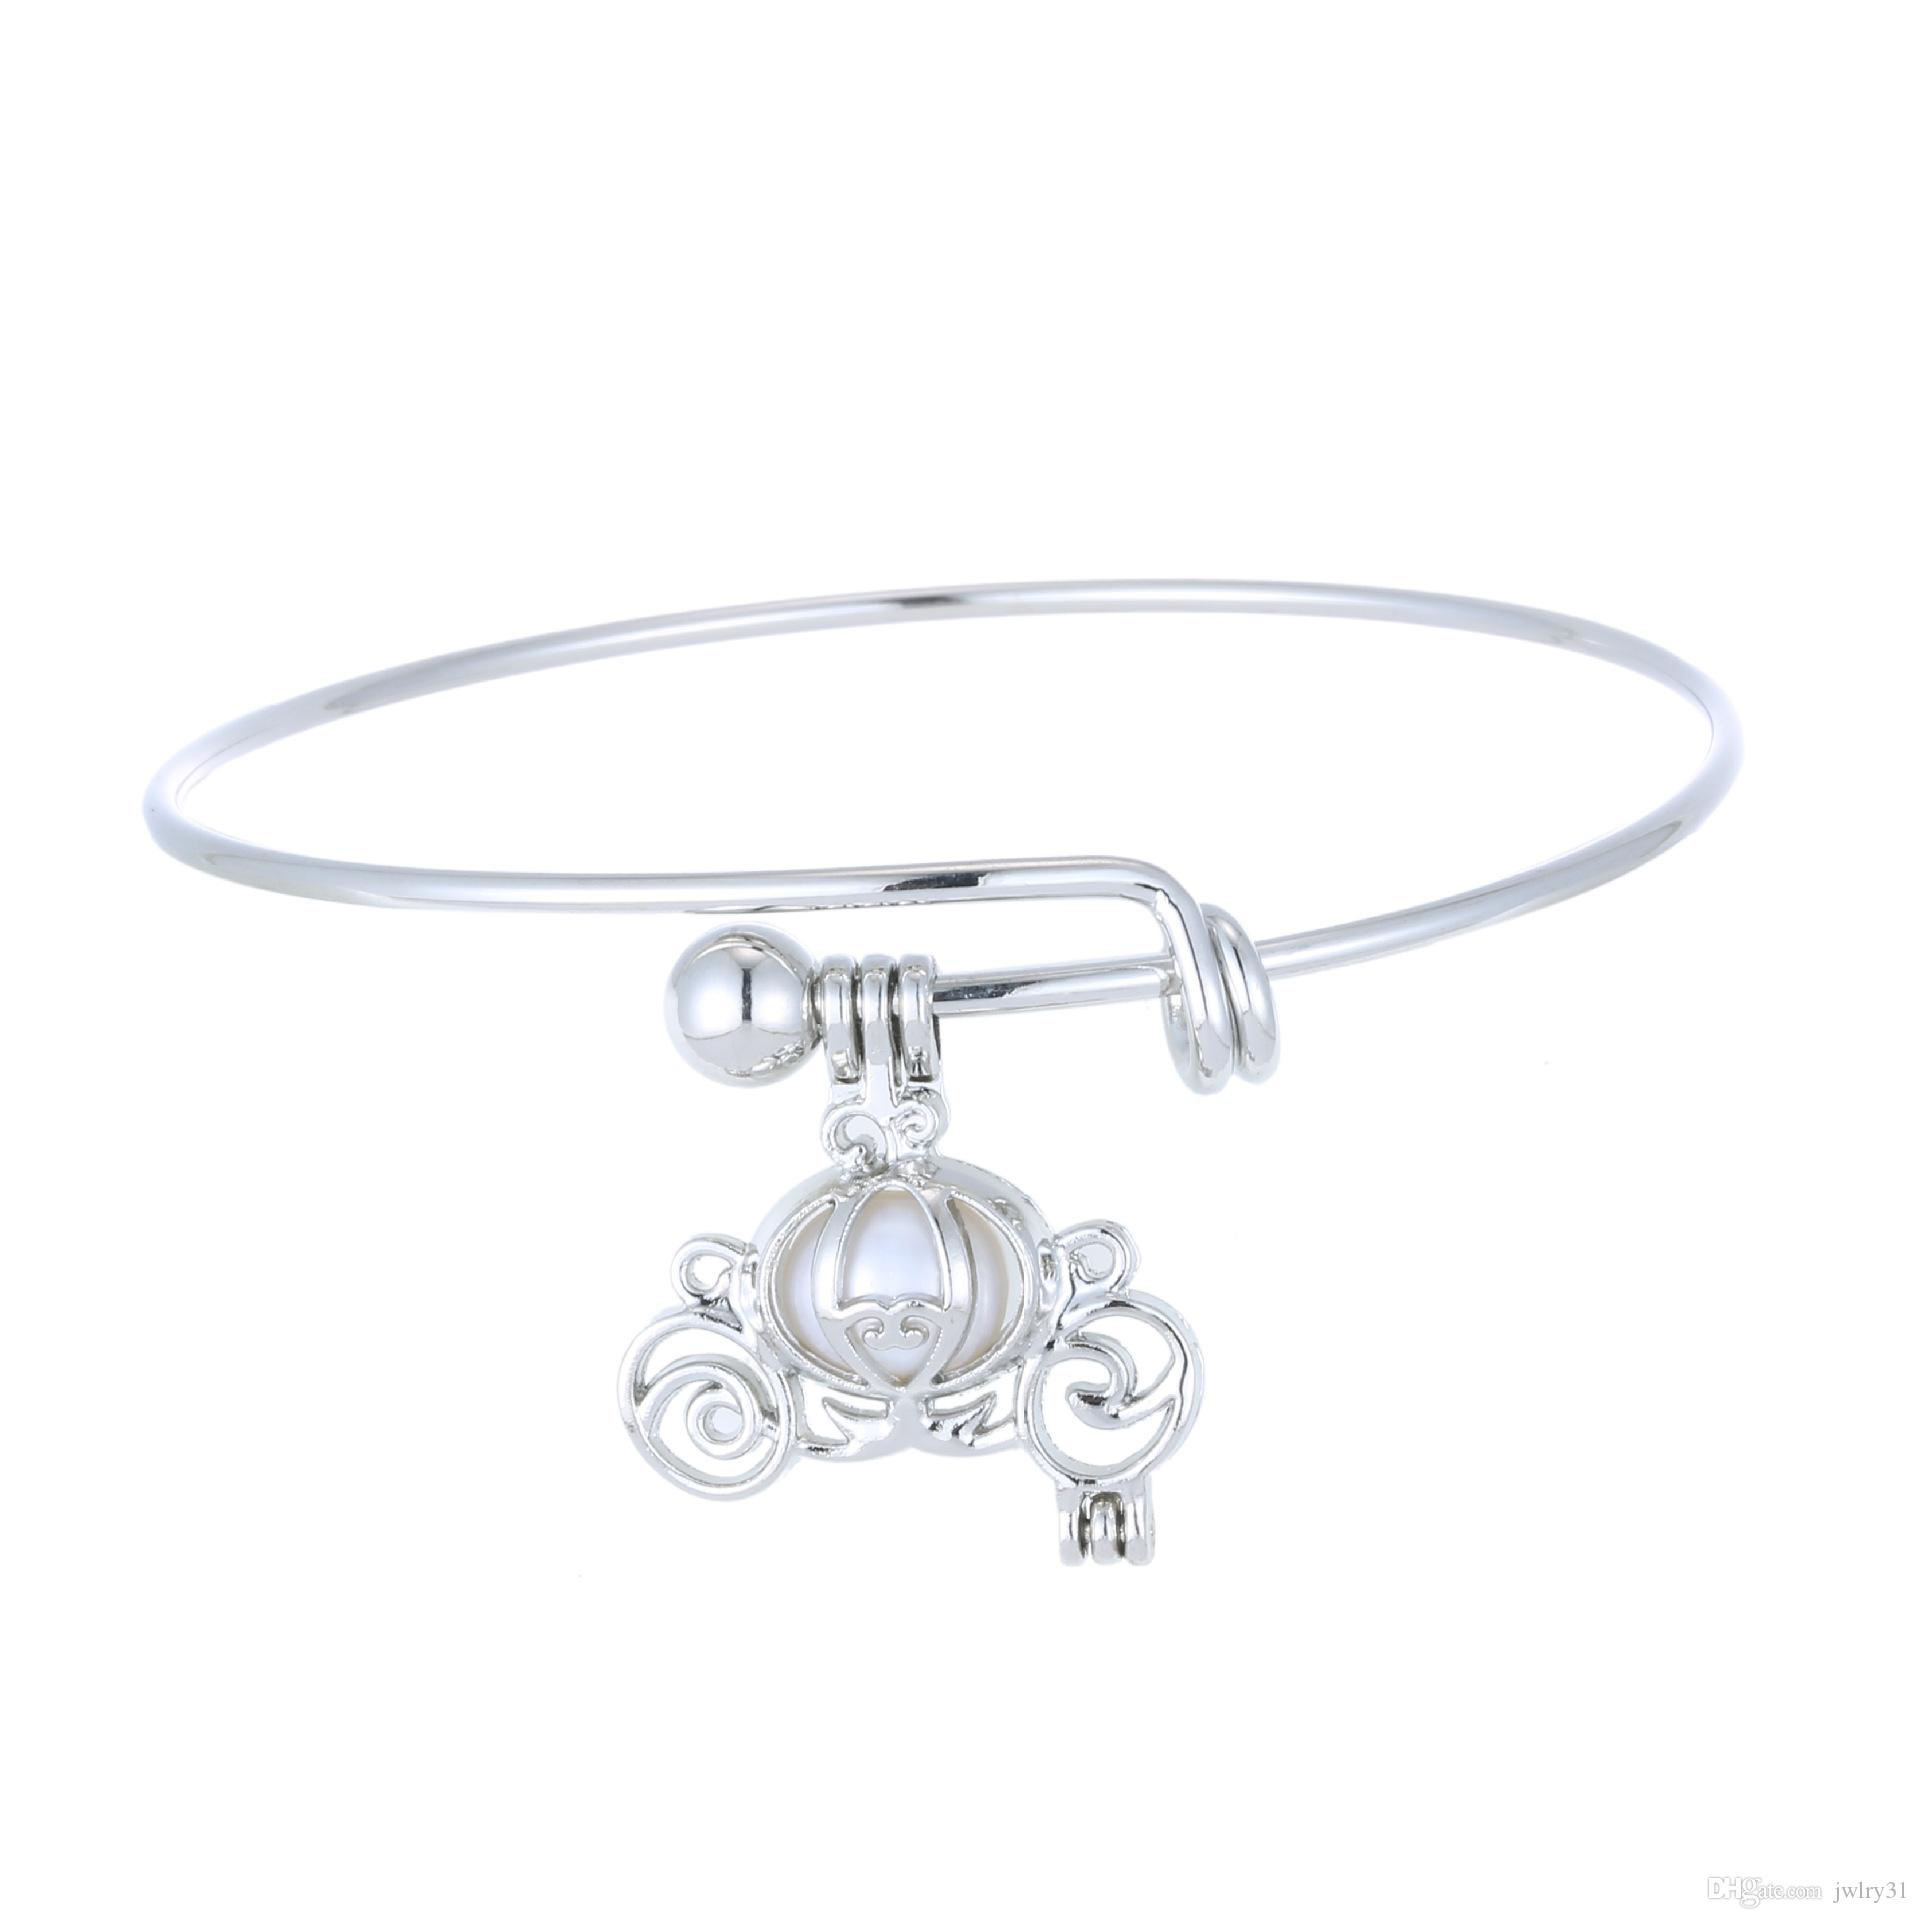 New fashion expandable wire bangle bracelets Pearl Oyster Charm Cage Lockets Bracelet DIY jewelry pick size cable wire bangle adjustable